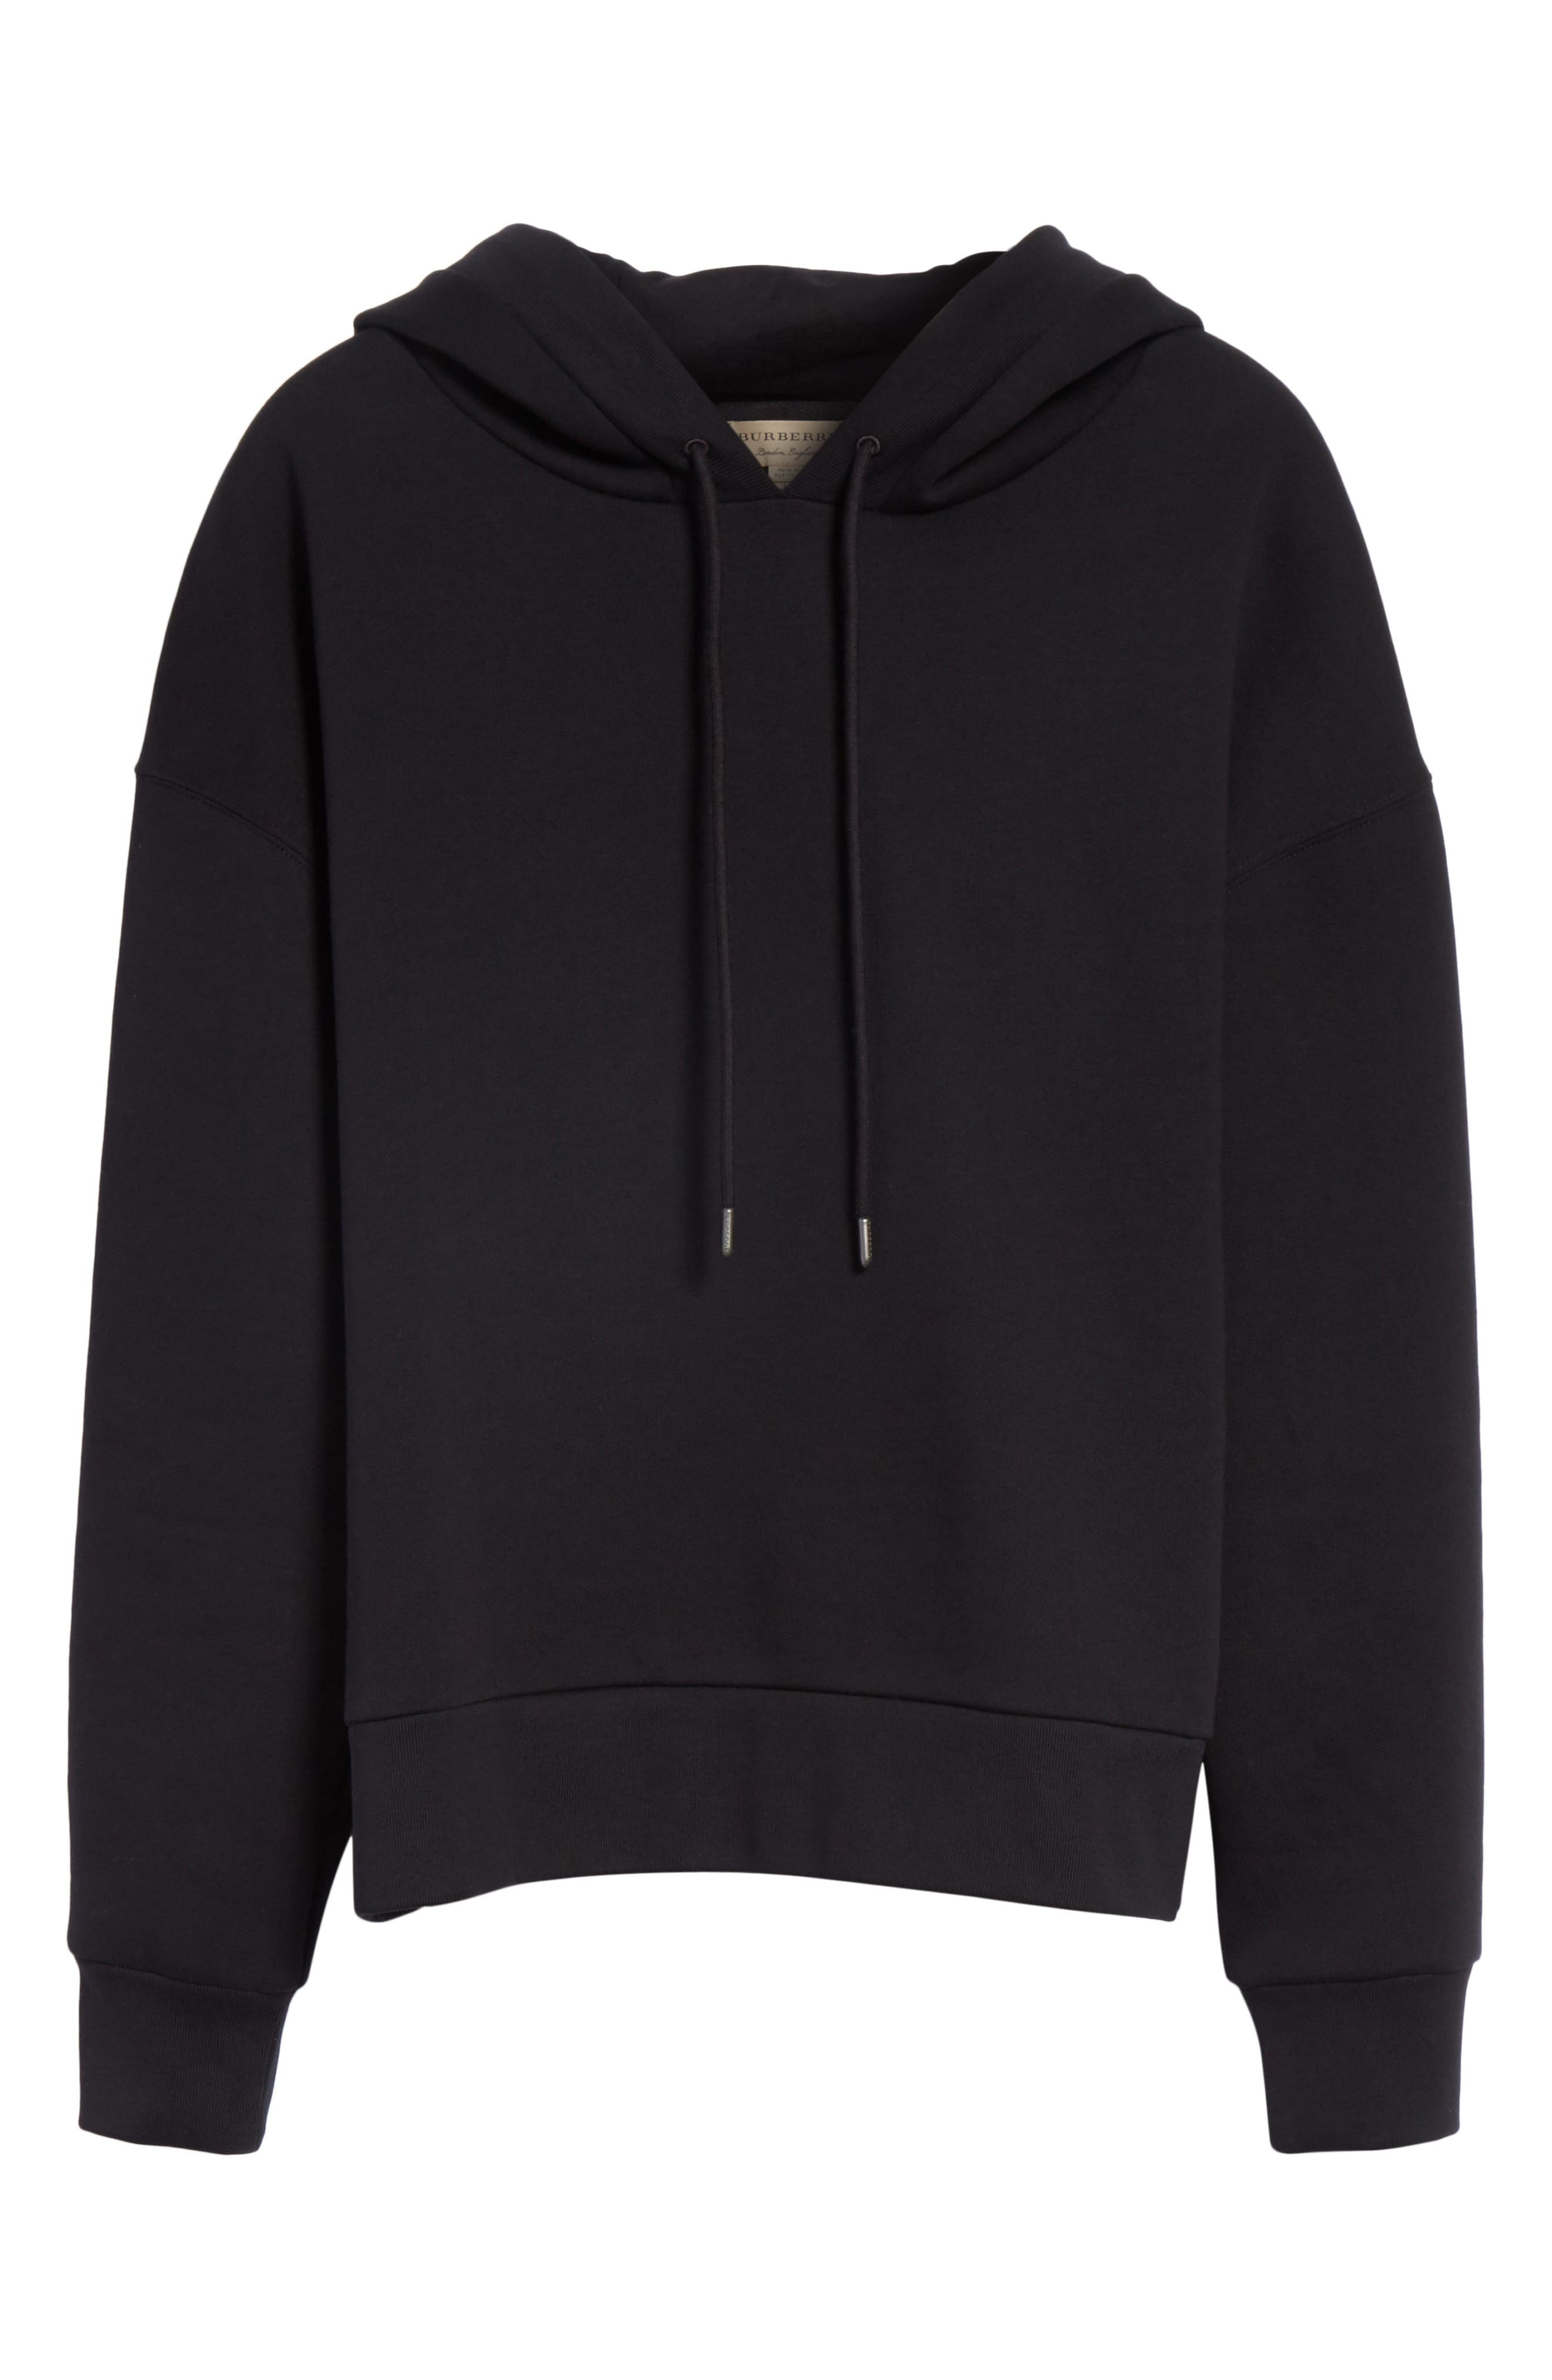 Escara Embroidered Hoodie,                             Alternate thumbnail 6, color,                             001